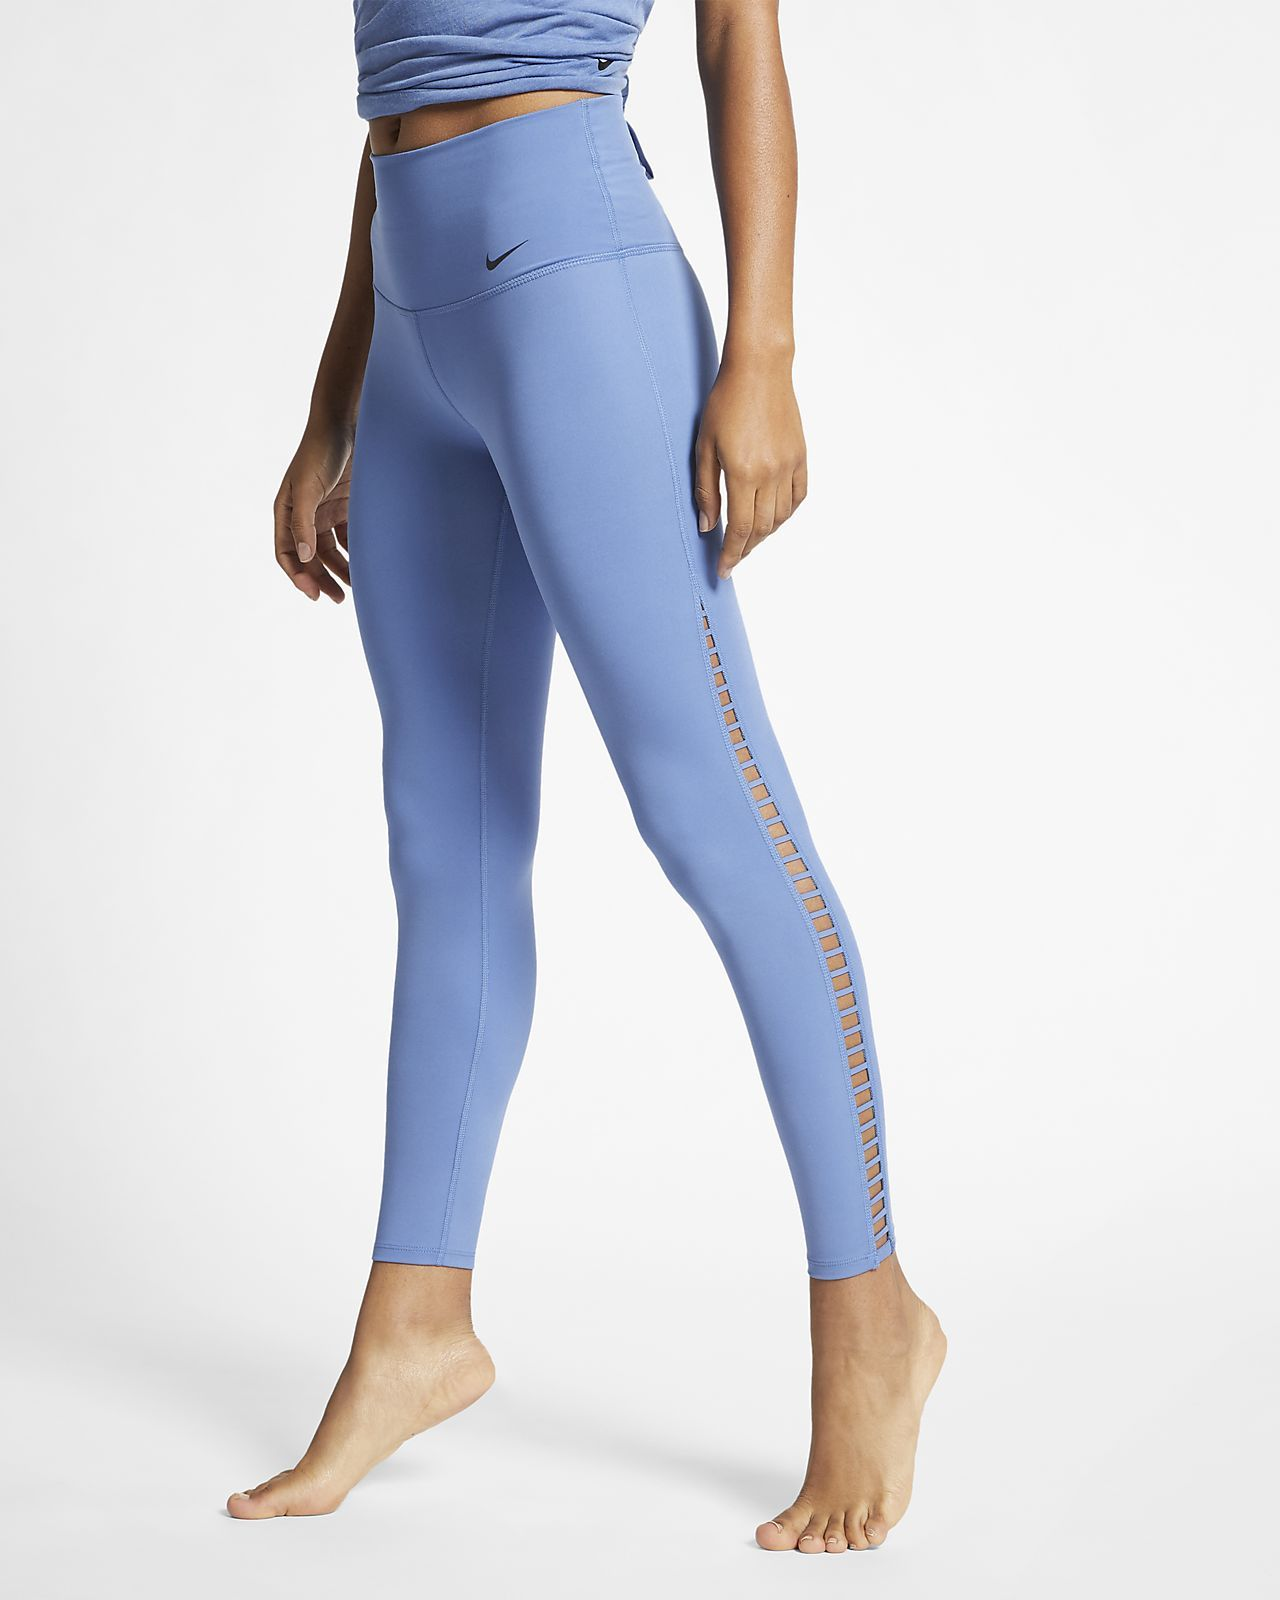 wholesale dealer 7ca6f a8d64 Nike Dri-FIT Power Women s 7 8 Yoga Training Tights. Nike.com